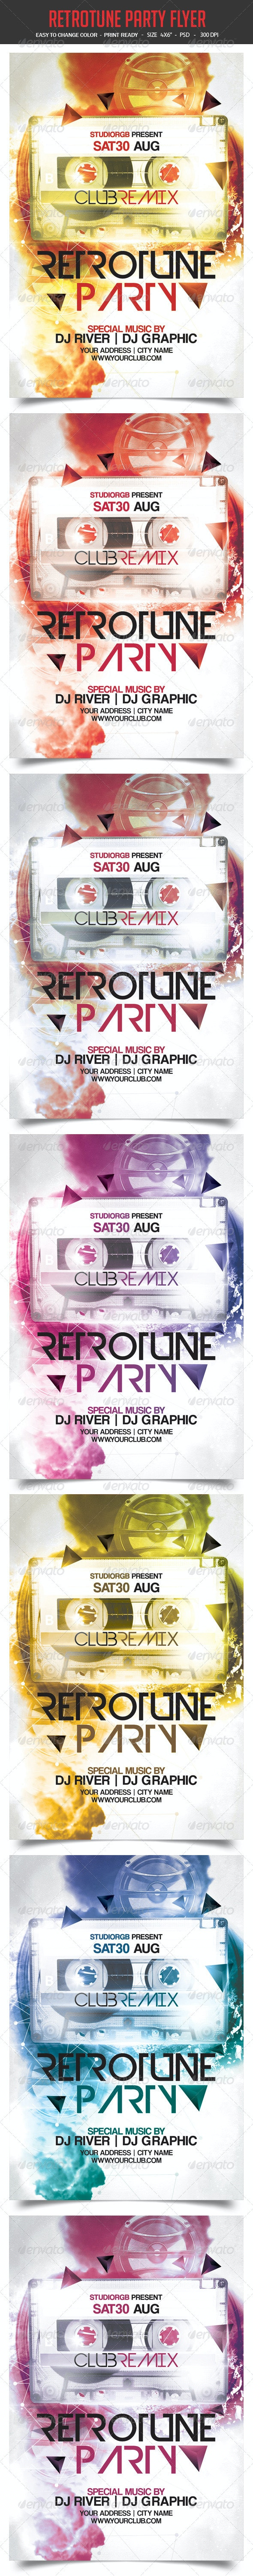 Retro Tune Party Flyer - Clubs & Parties Events